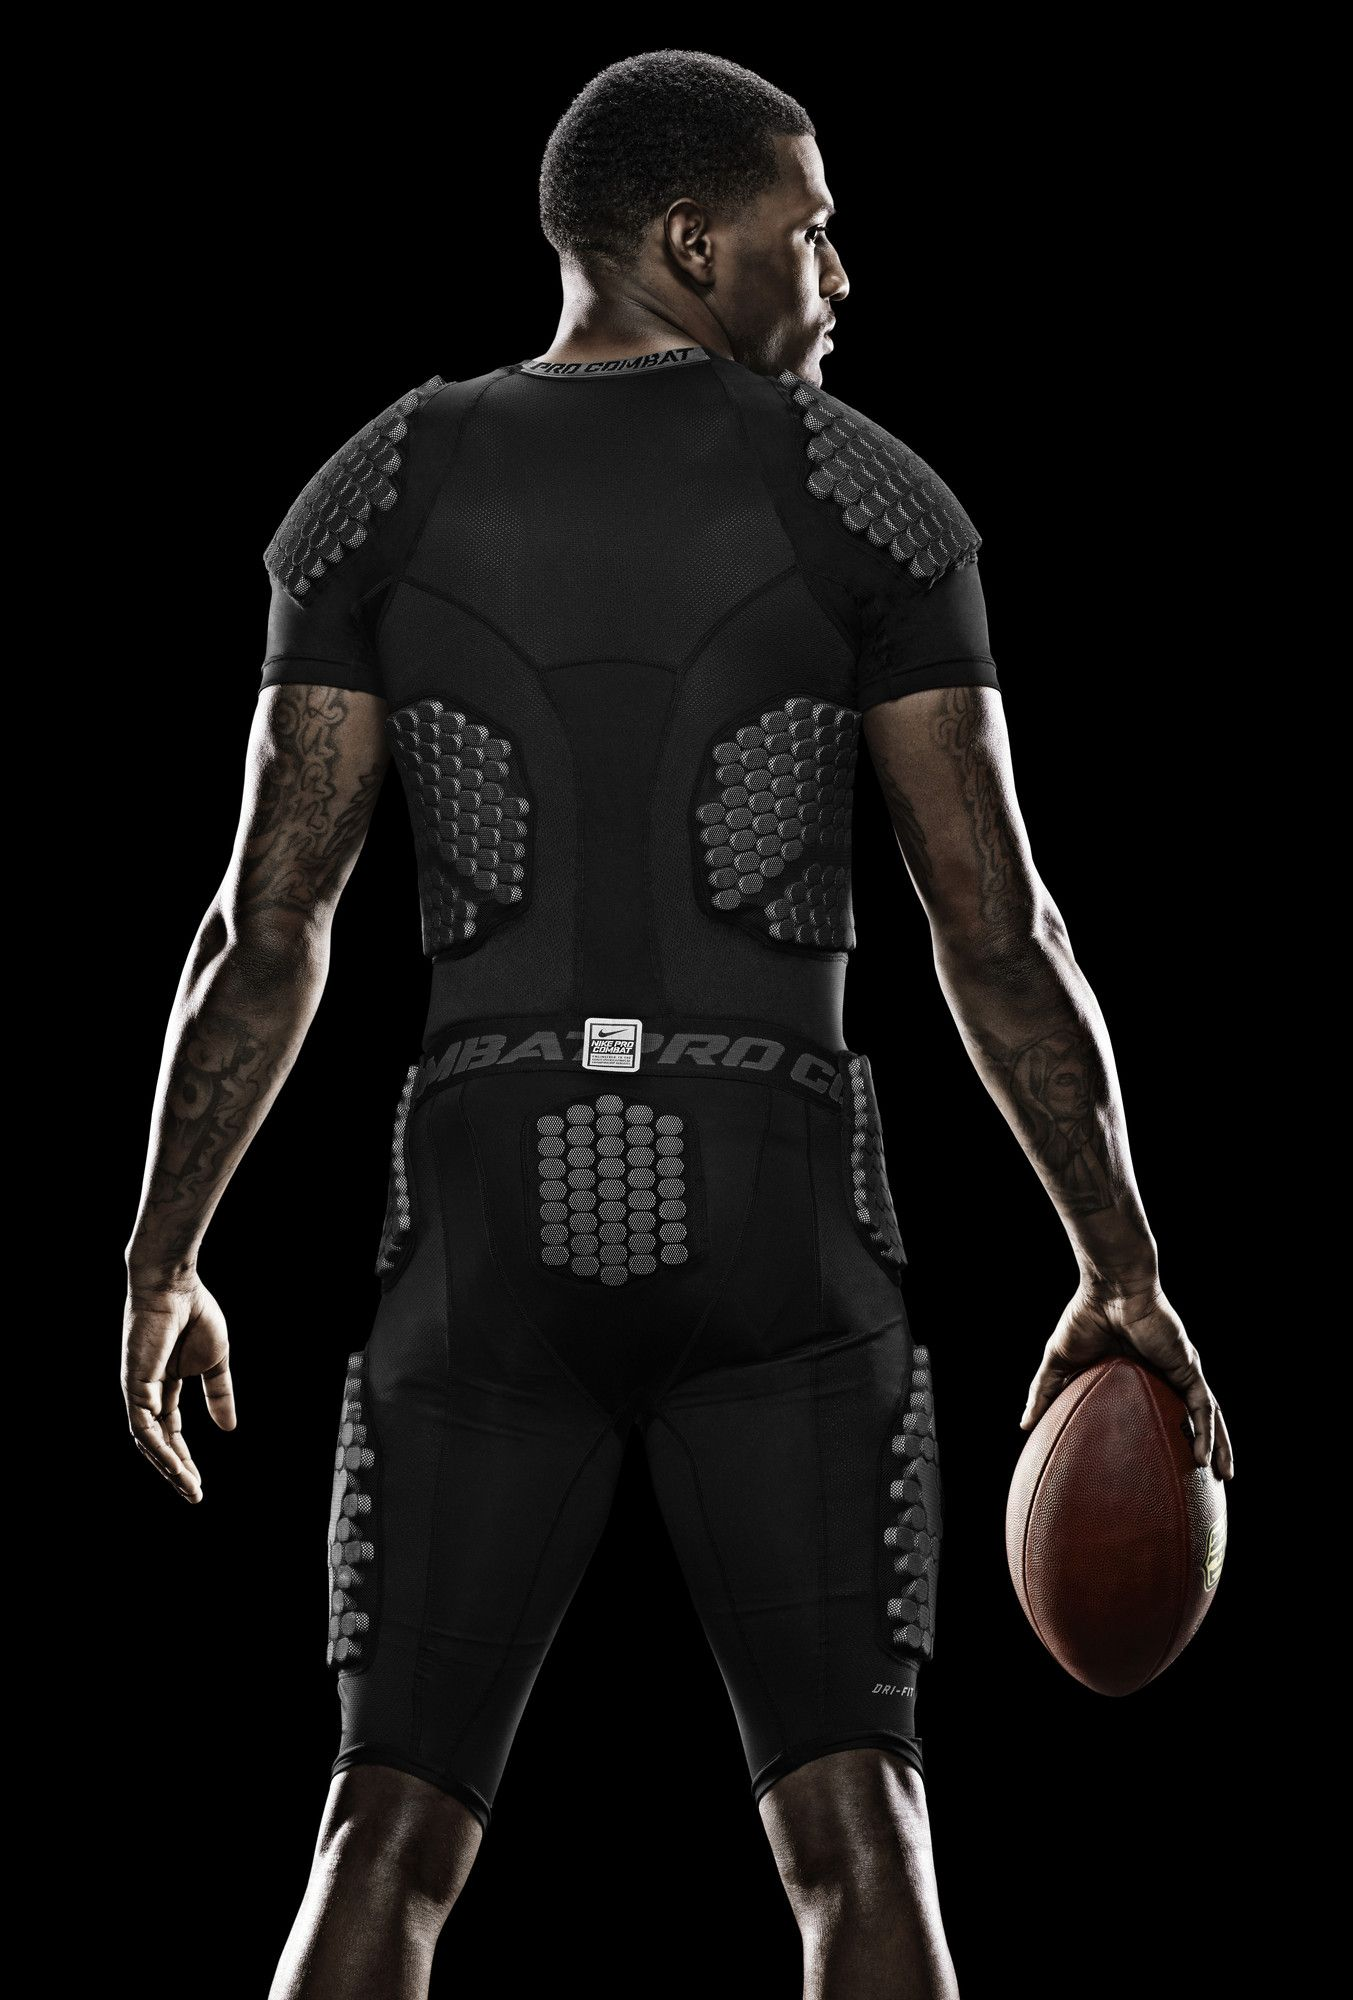 padding armor silhouette... SWEAT-WICKING a18ed7d6ac7